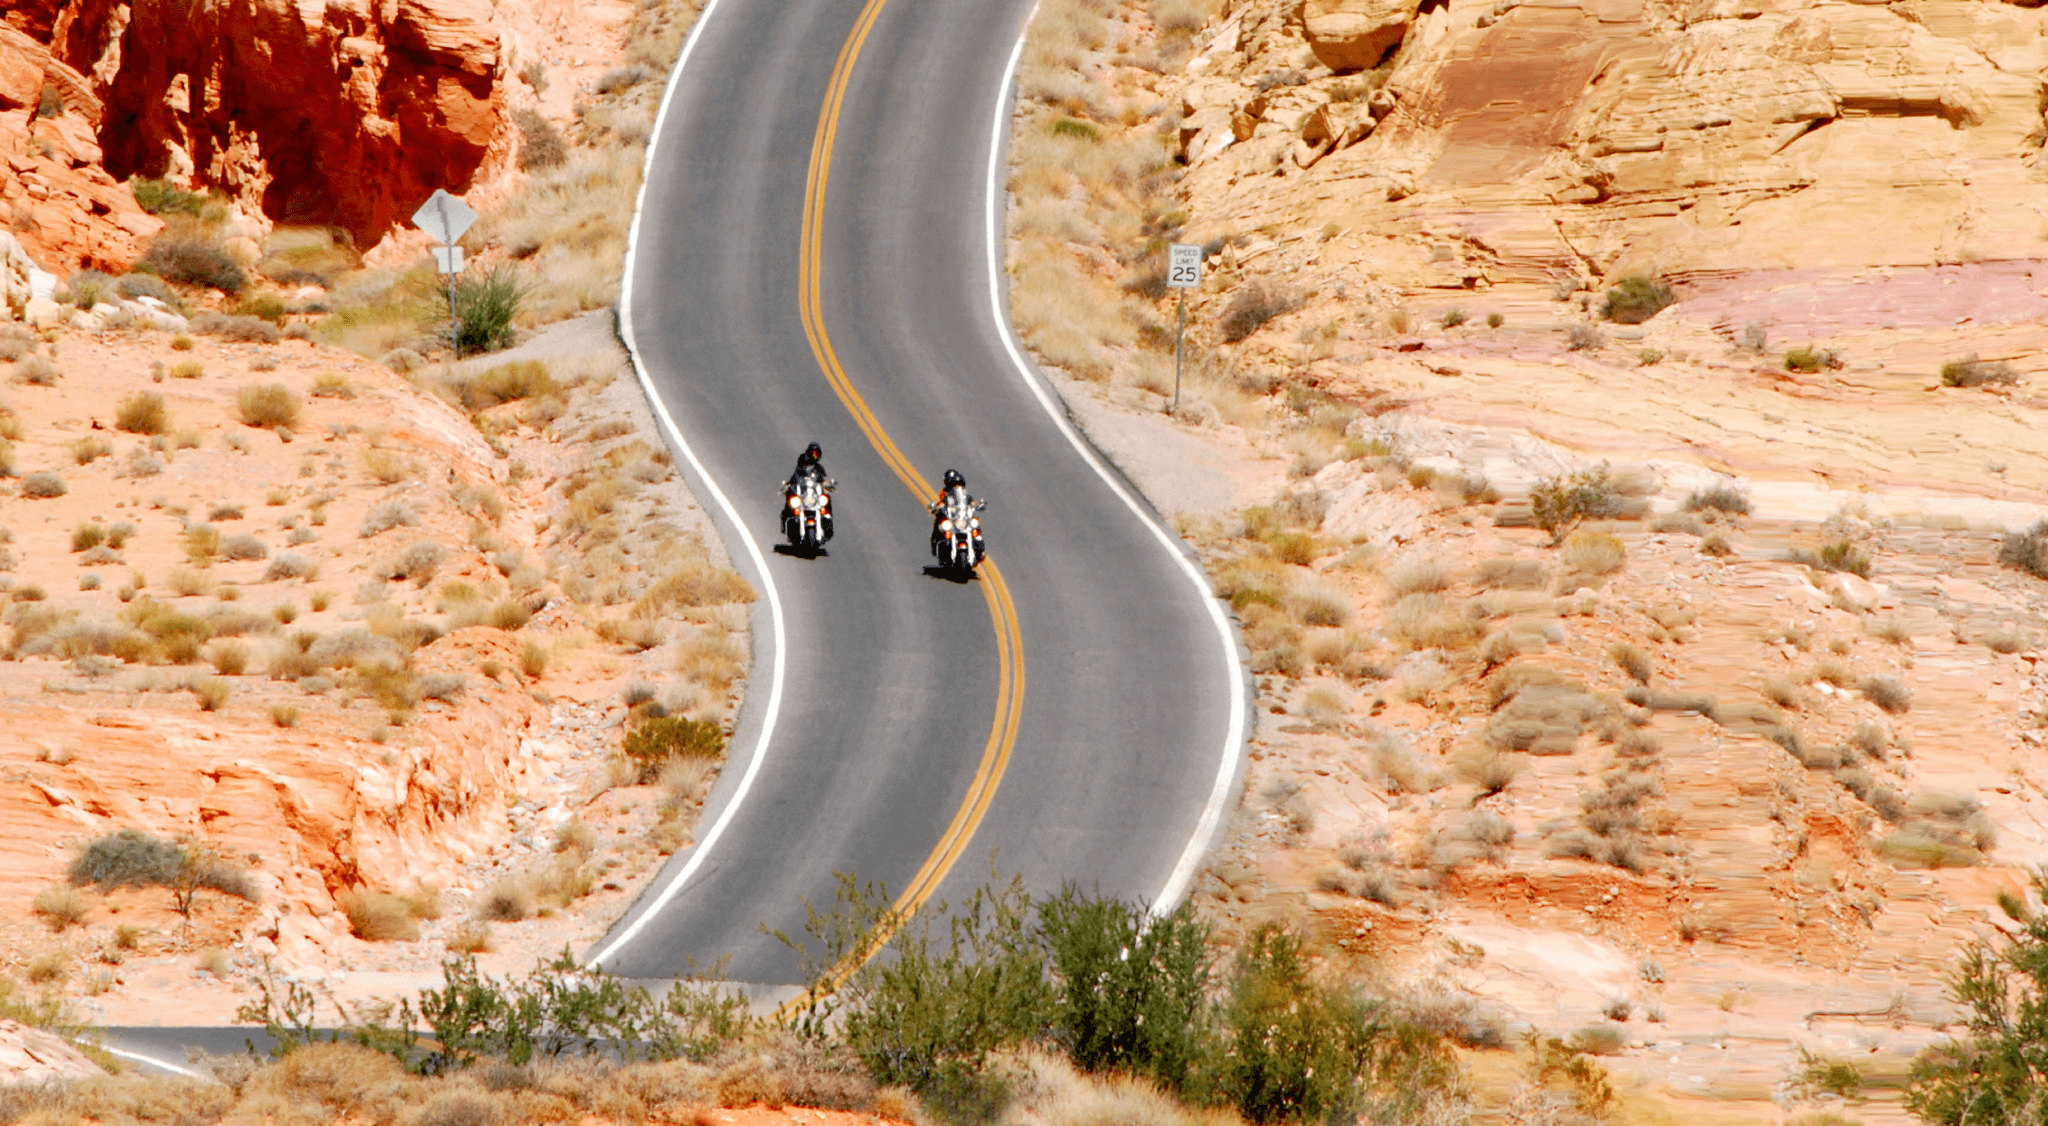 motorcycles on curving road